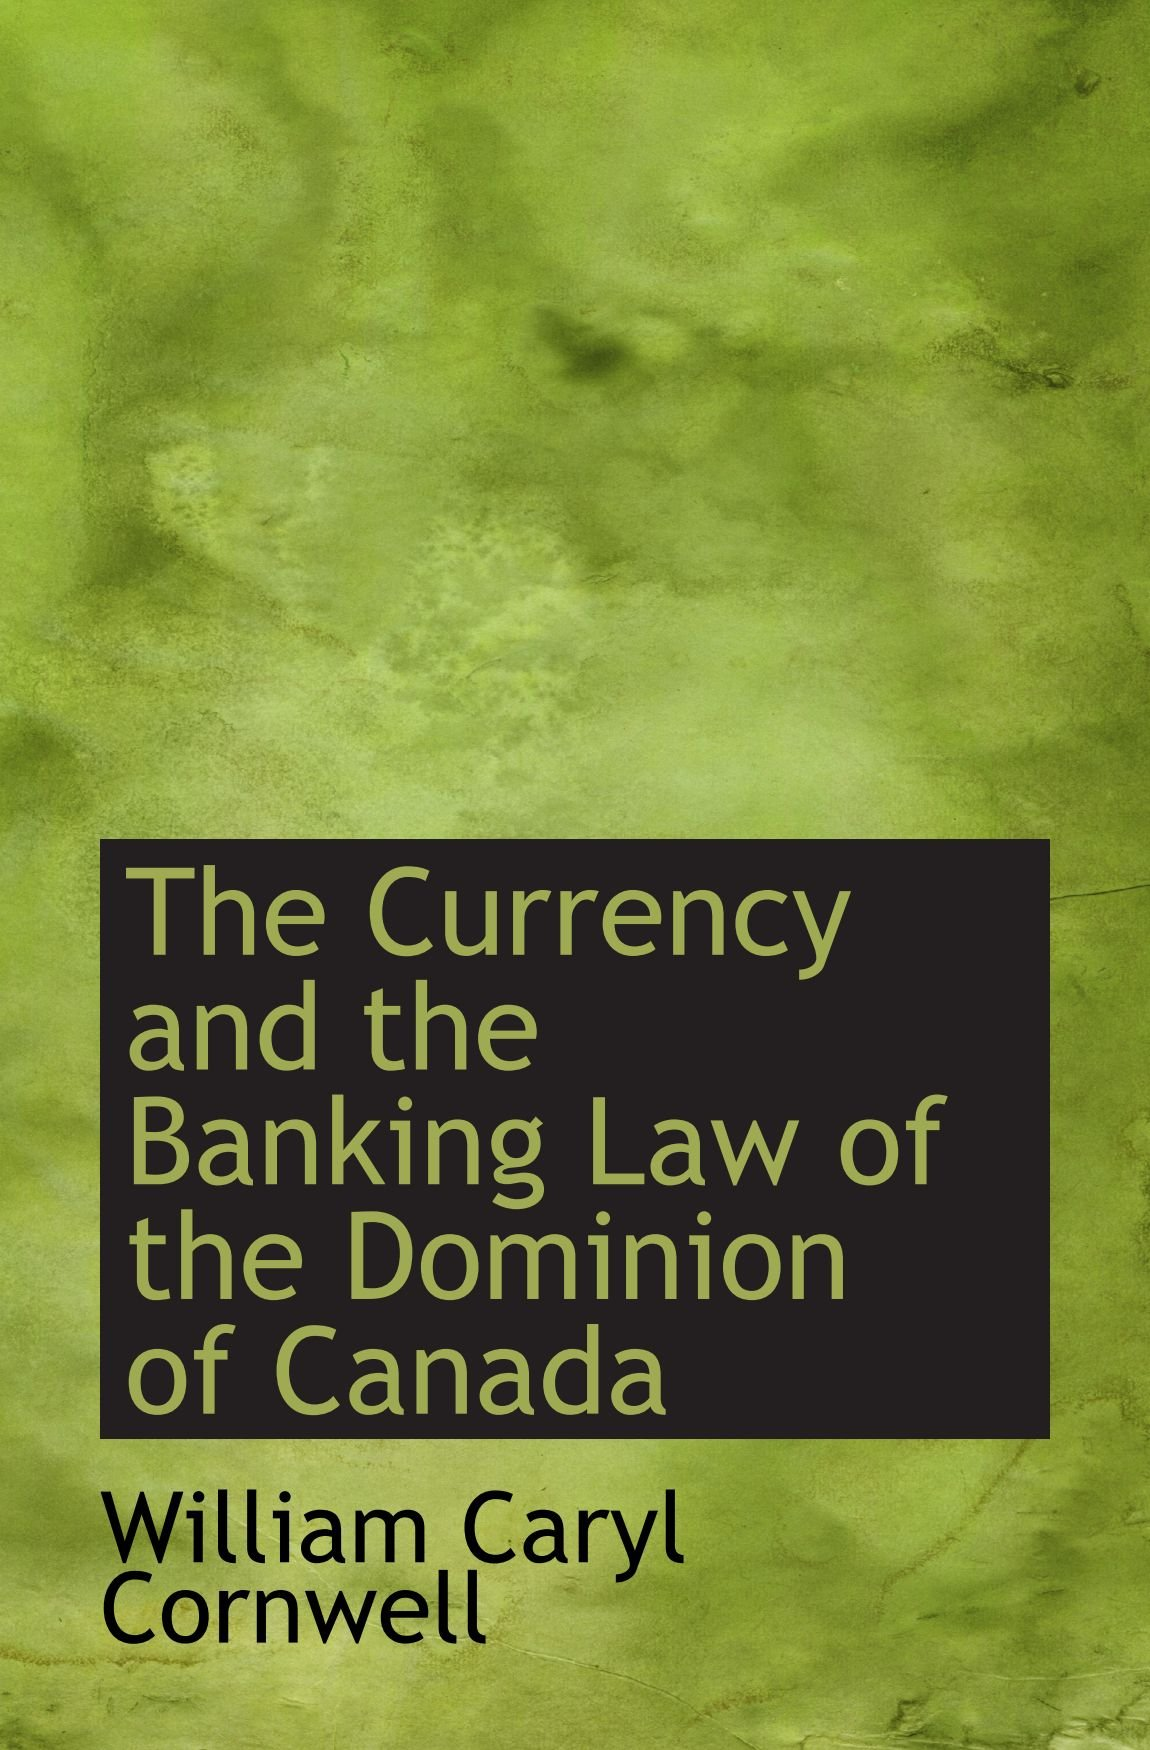 Download The Currency and the Banking Law of the Dominion of Canada ebook